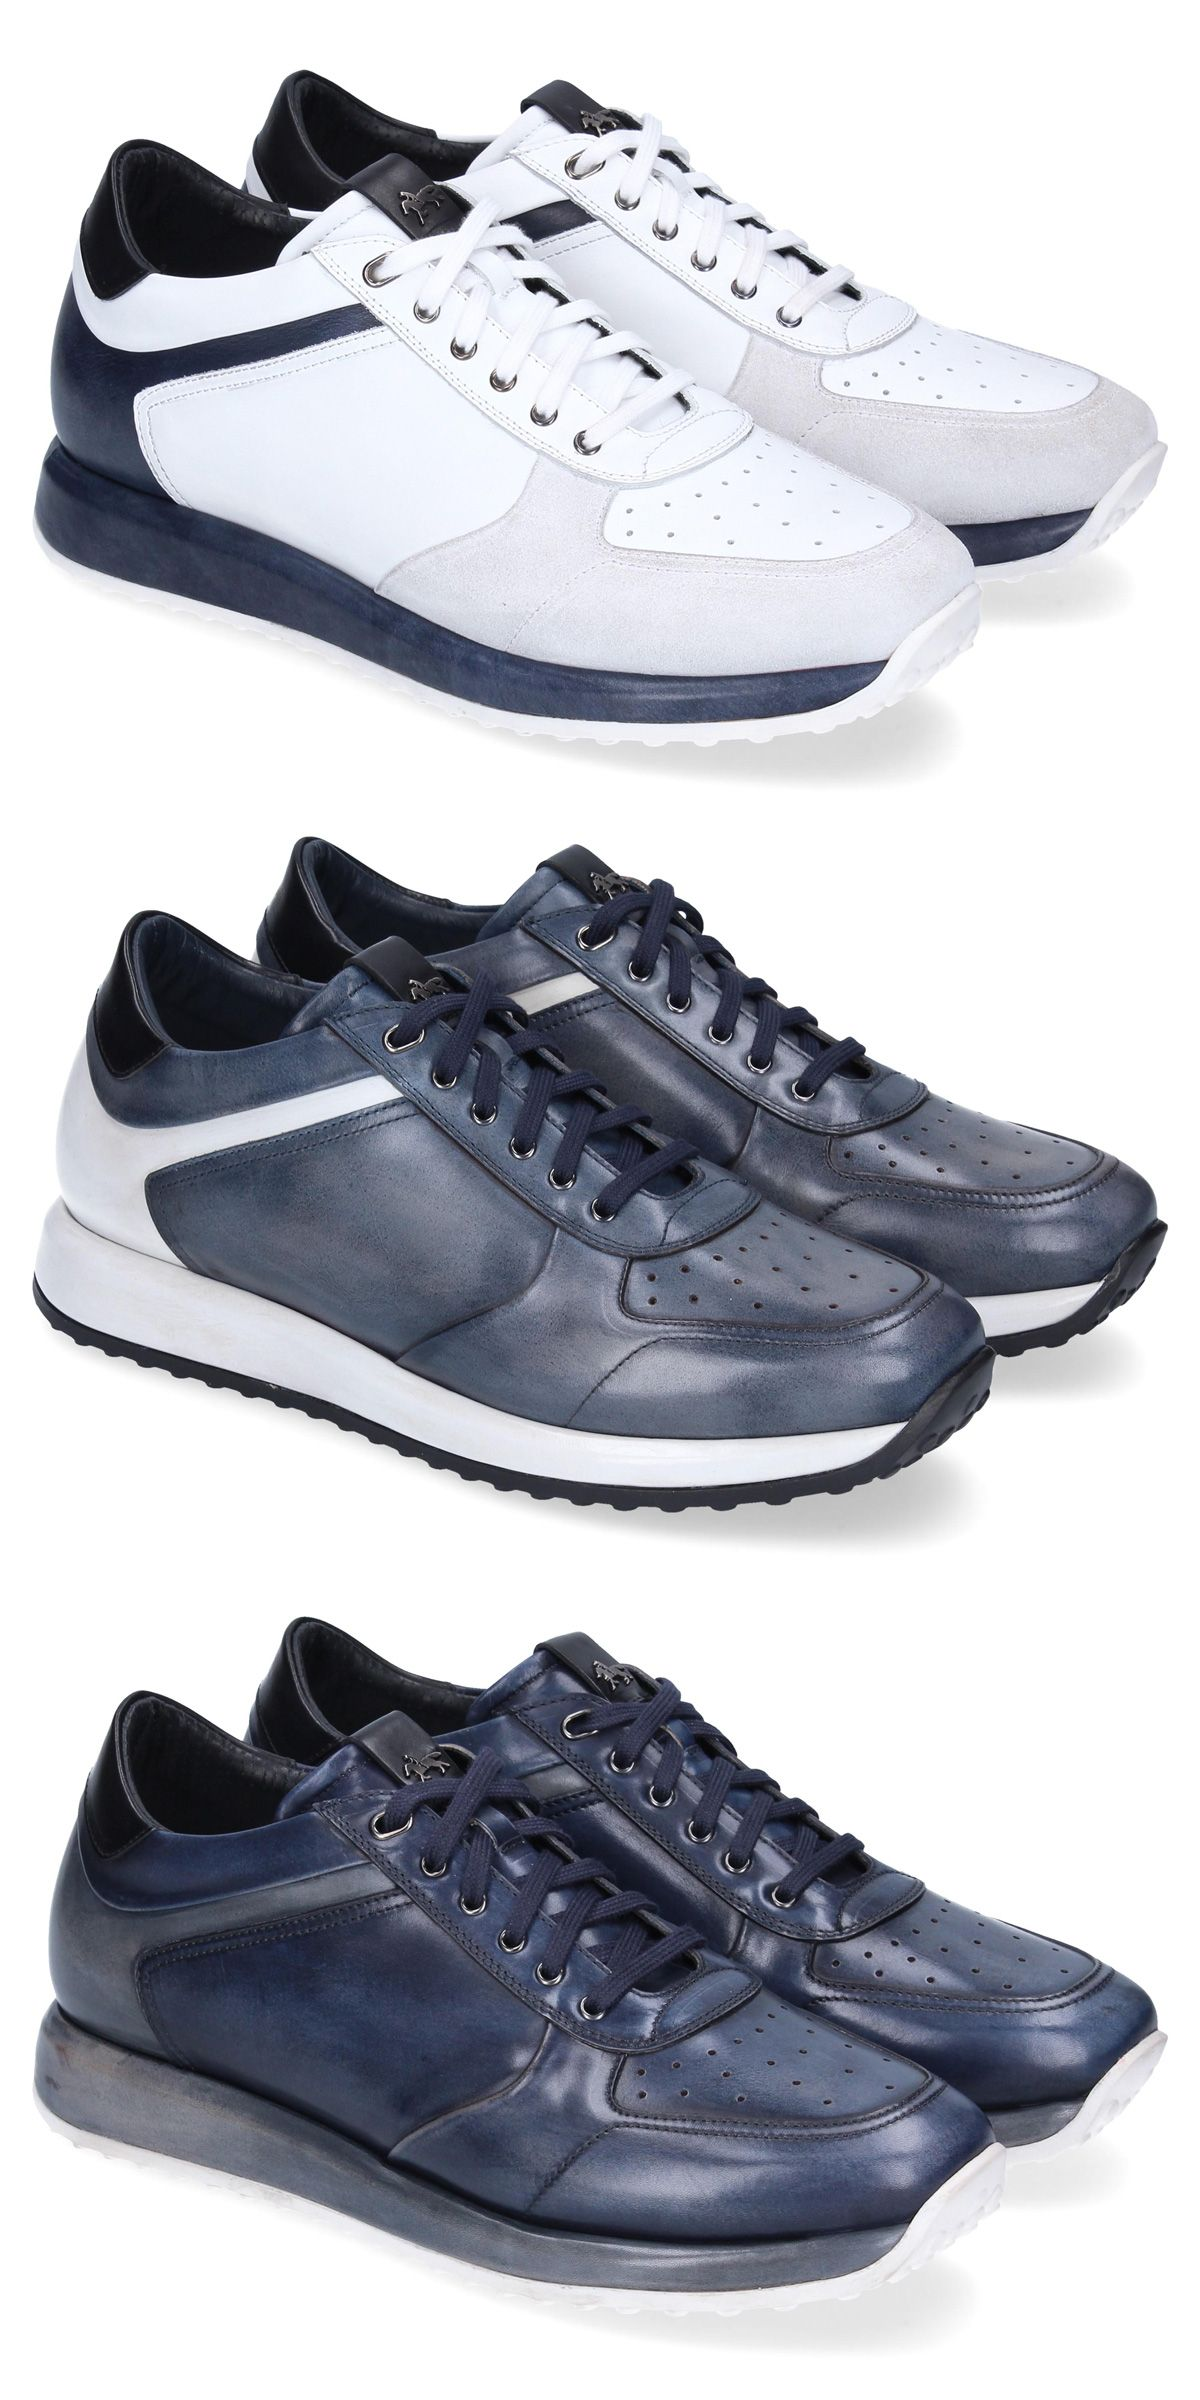 The new Franceschetti idea about the running sneakers